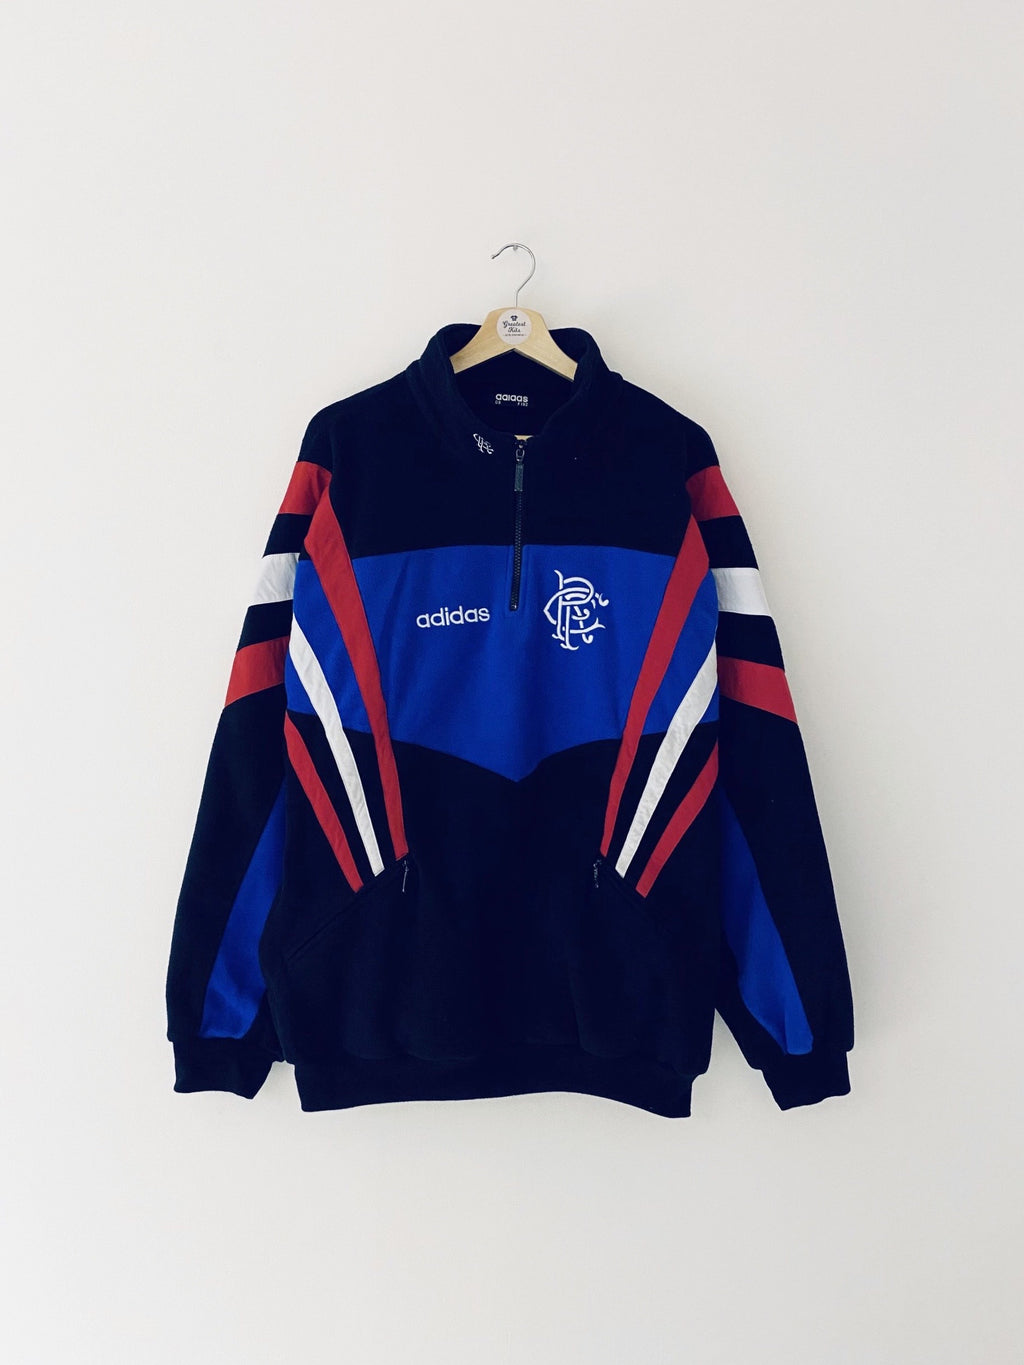 1996/97 Rangers Fleece Training Top (L/XL) 9/10